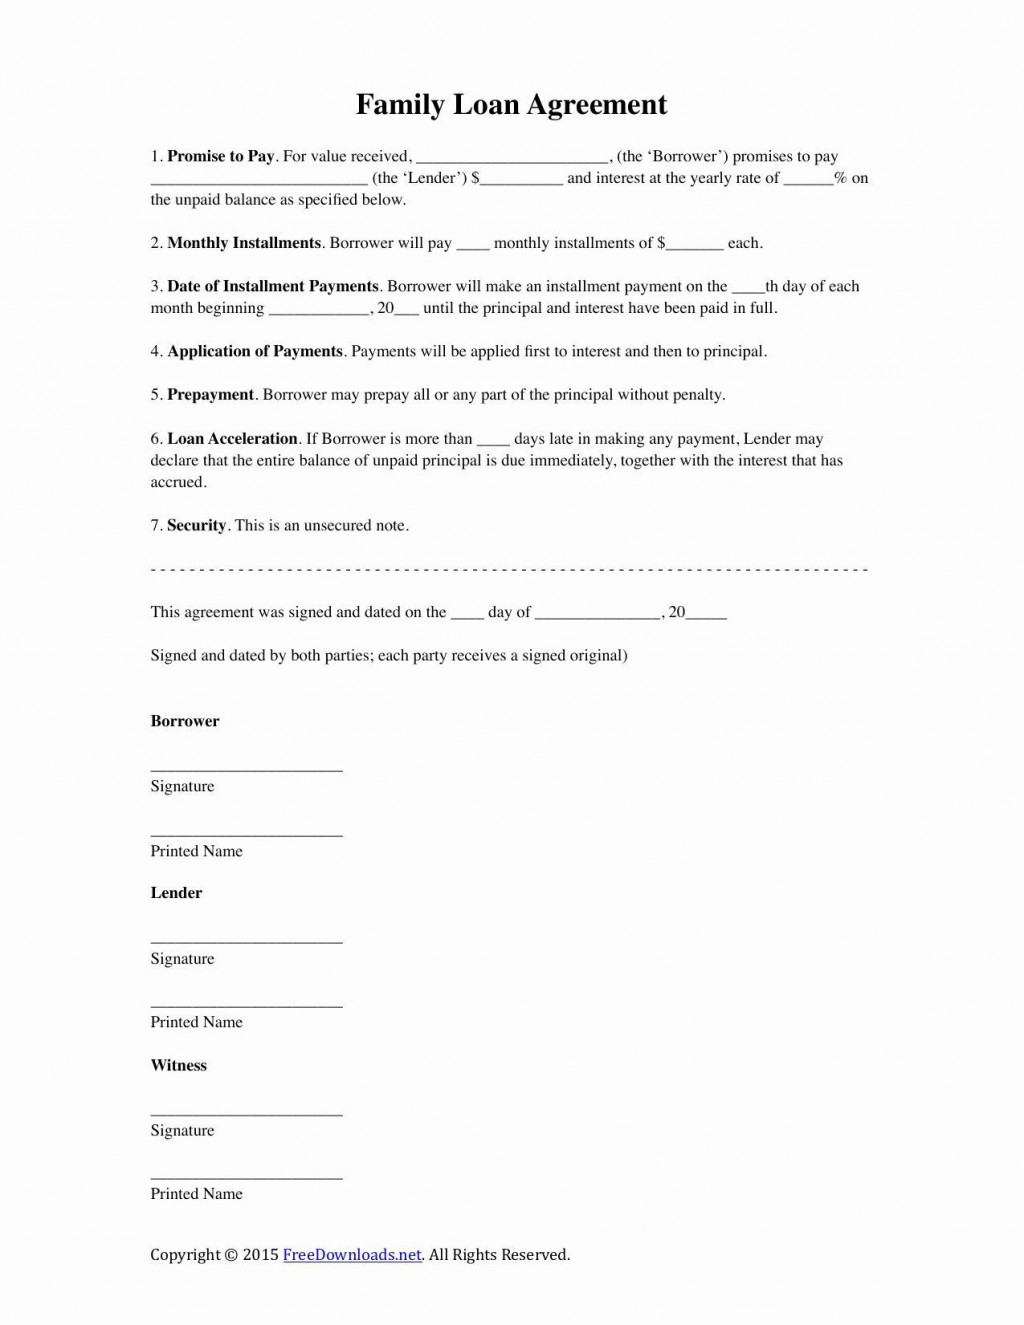 000 Outstanding Family Loan Agreement Template Free Uk High Def  SimpleLarge